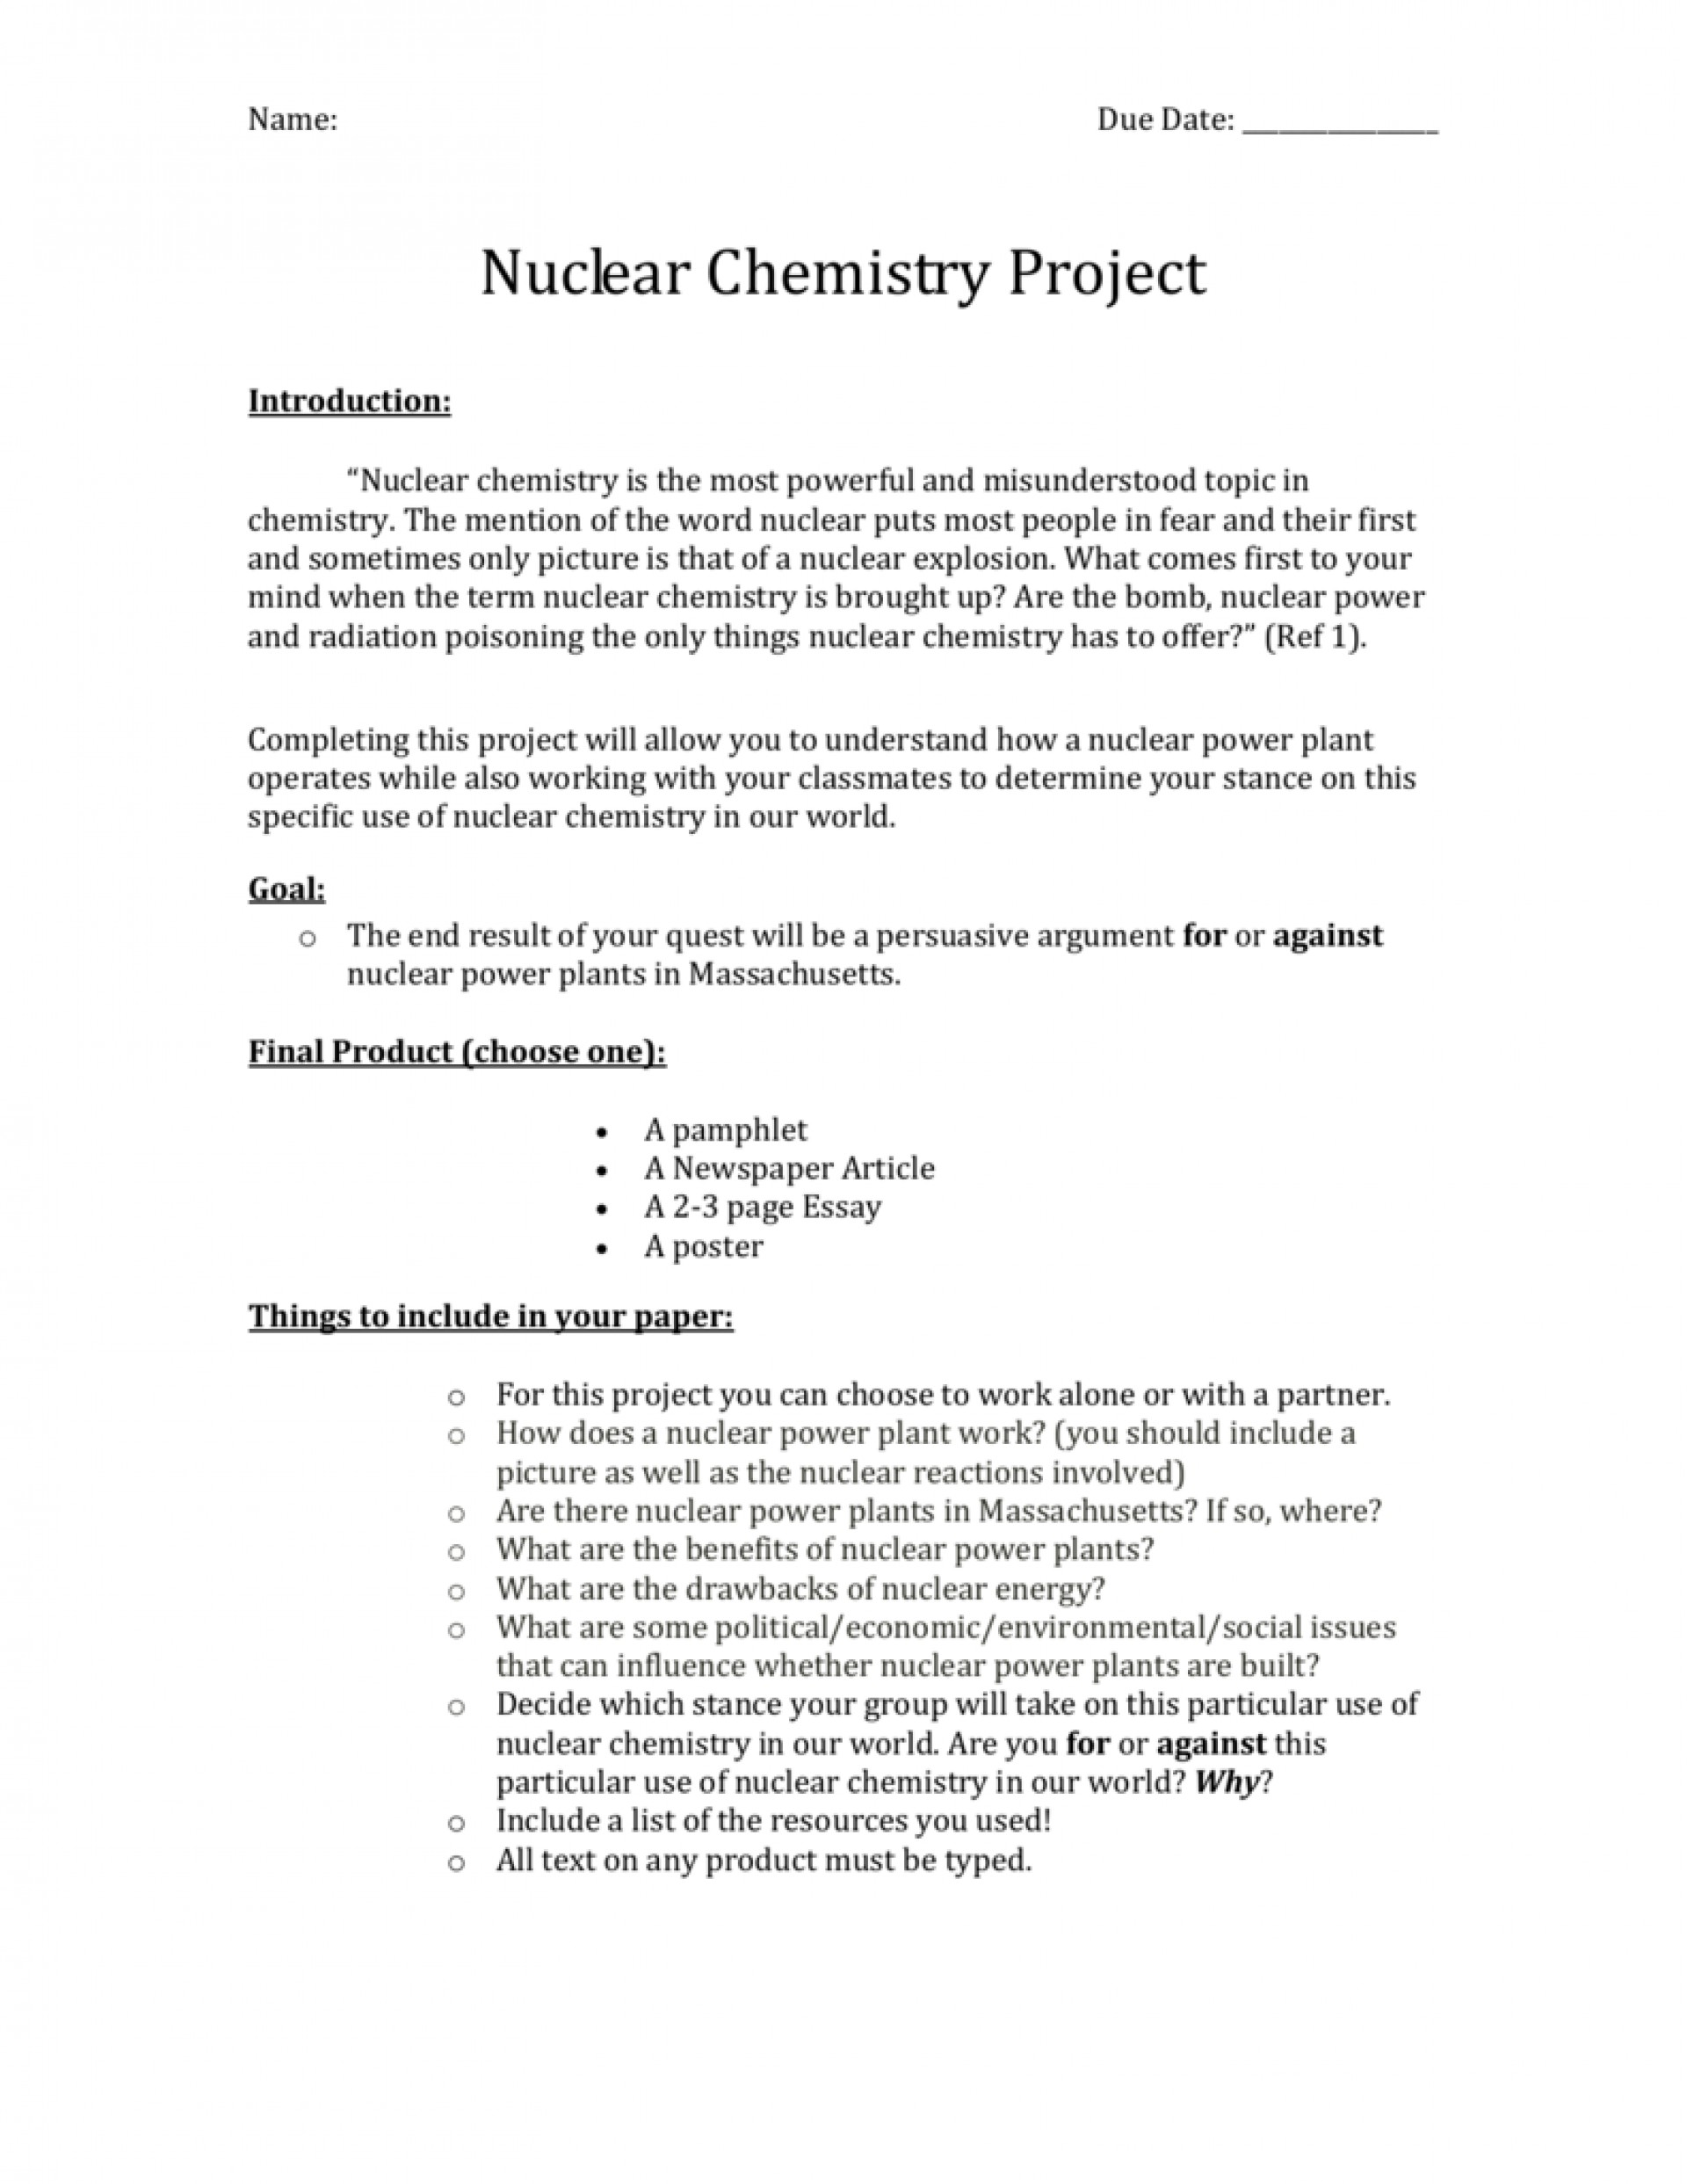 002 Nuclear Chemistry Essay 007069203 1 Awesome Advantages And Disadvantages 1920